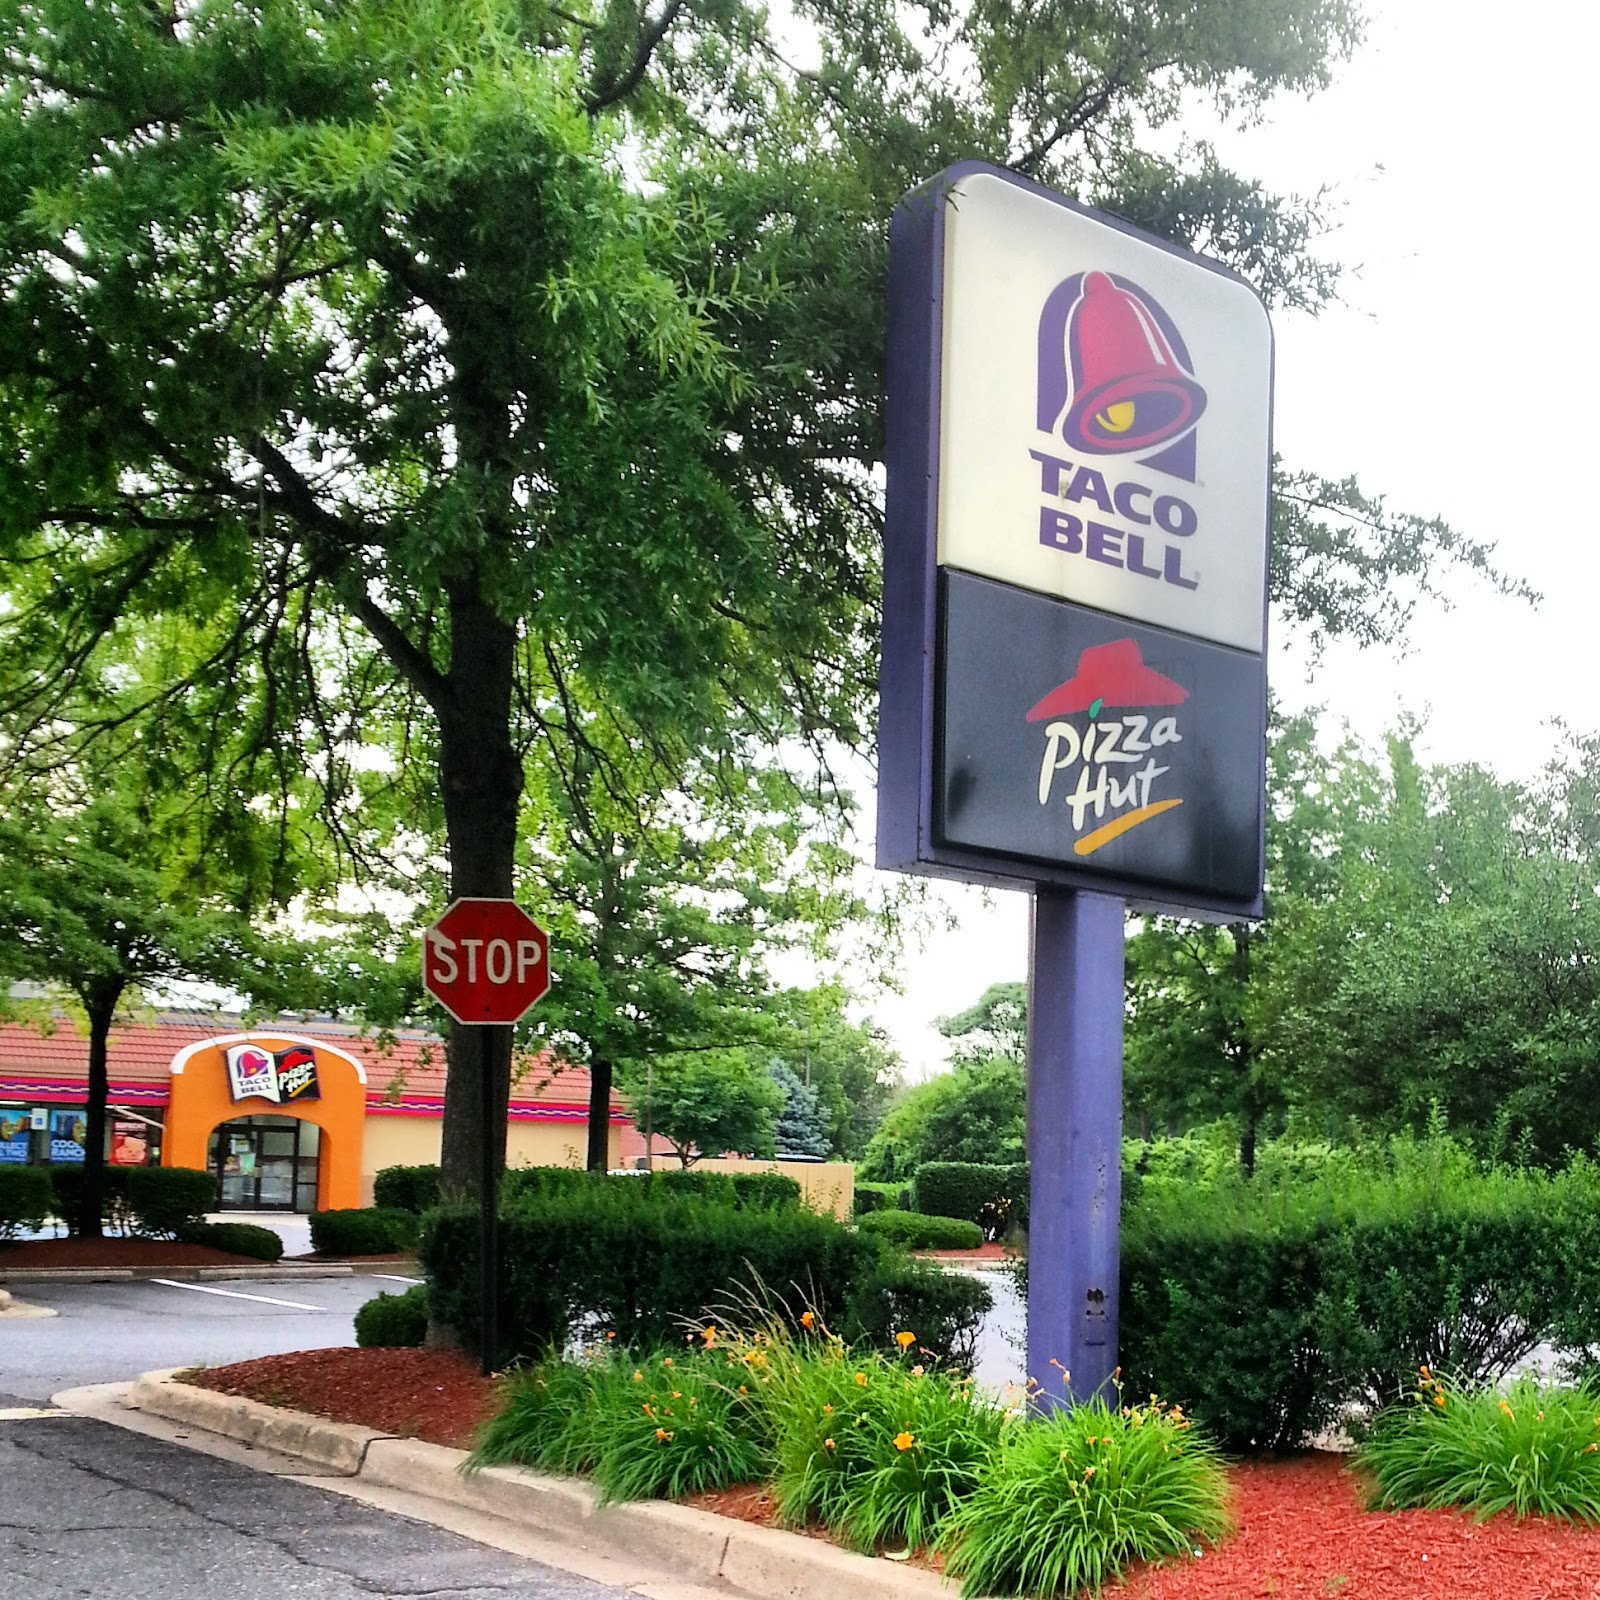 Taco Bell Pizza Hut Drive Thru Menu Taco bell/pizza hut menus